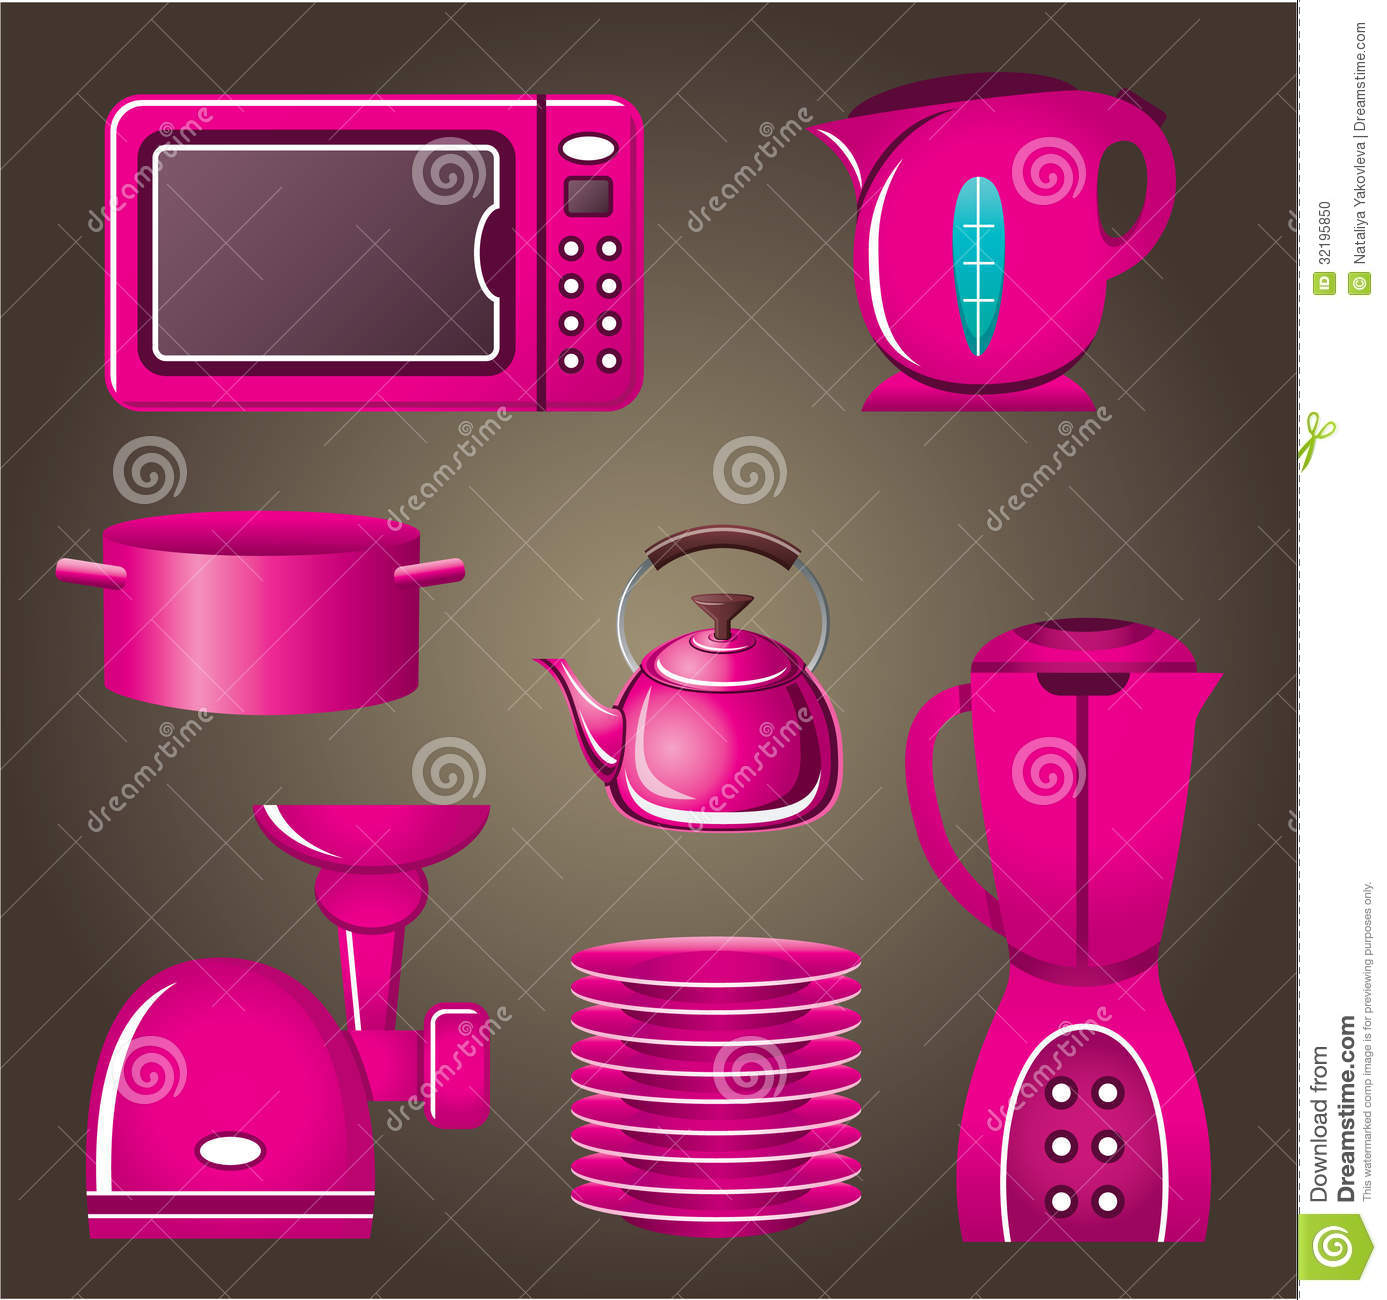 Uncategorized Pink Kitchen Appliance set pink cookware and kitchen appliances stock photo image 32195850 eps10 gradient pink